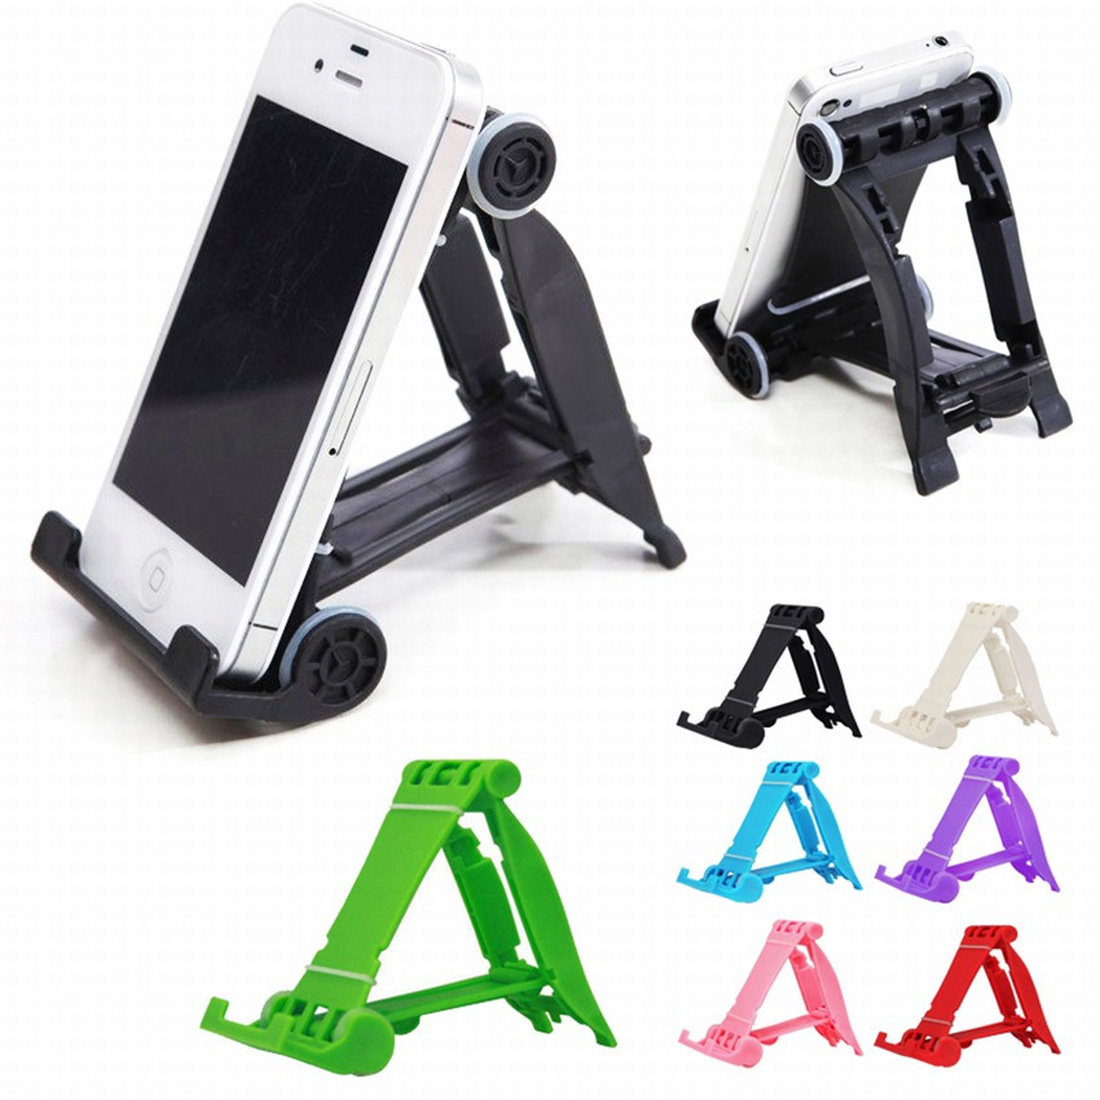 Etmakit Newest Diverse Colors Universal Portable Colorful Phone Holder Foldable Mobile Phone Stents Stand Multi-Colors